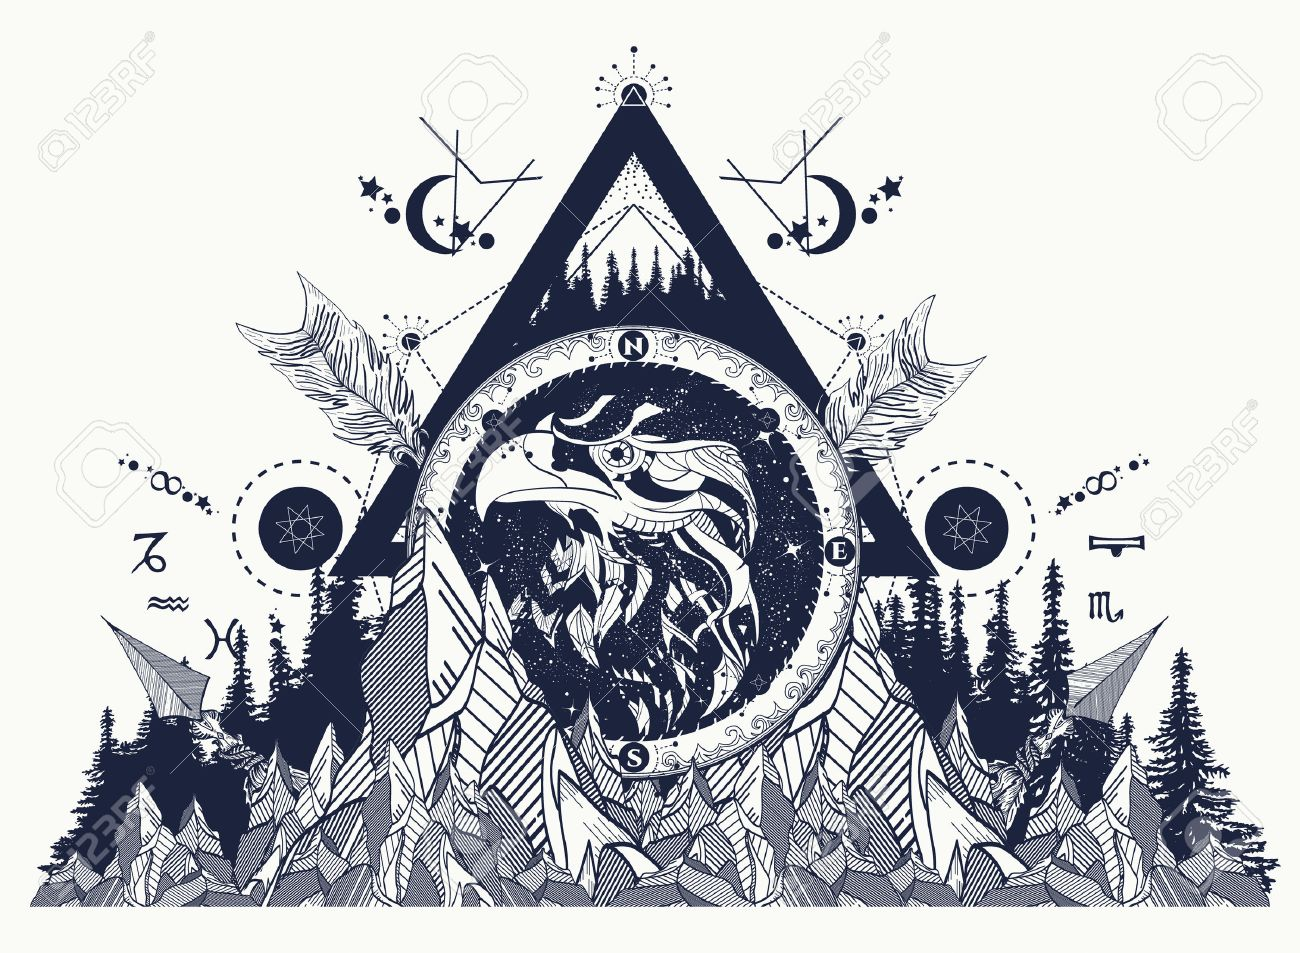 Eagle  tattoo art, mountains, crossed arrows, forest. ?strological symbols, ethnic style, falcon in rocks. Creative t-shirt design, spirituality, boho, magic symbol. Foto de archivo - 66780097